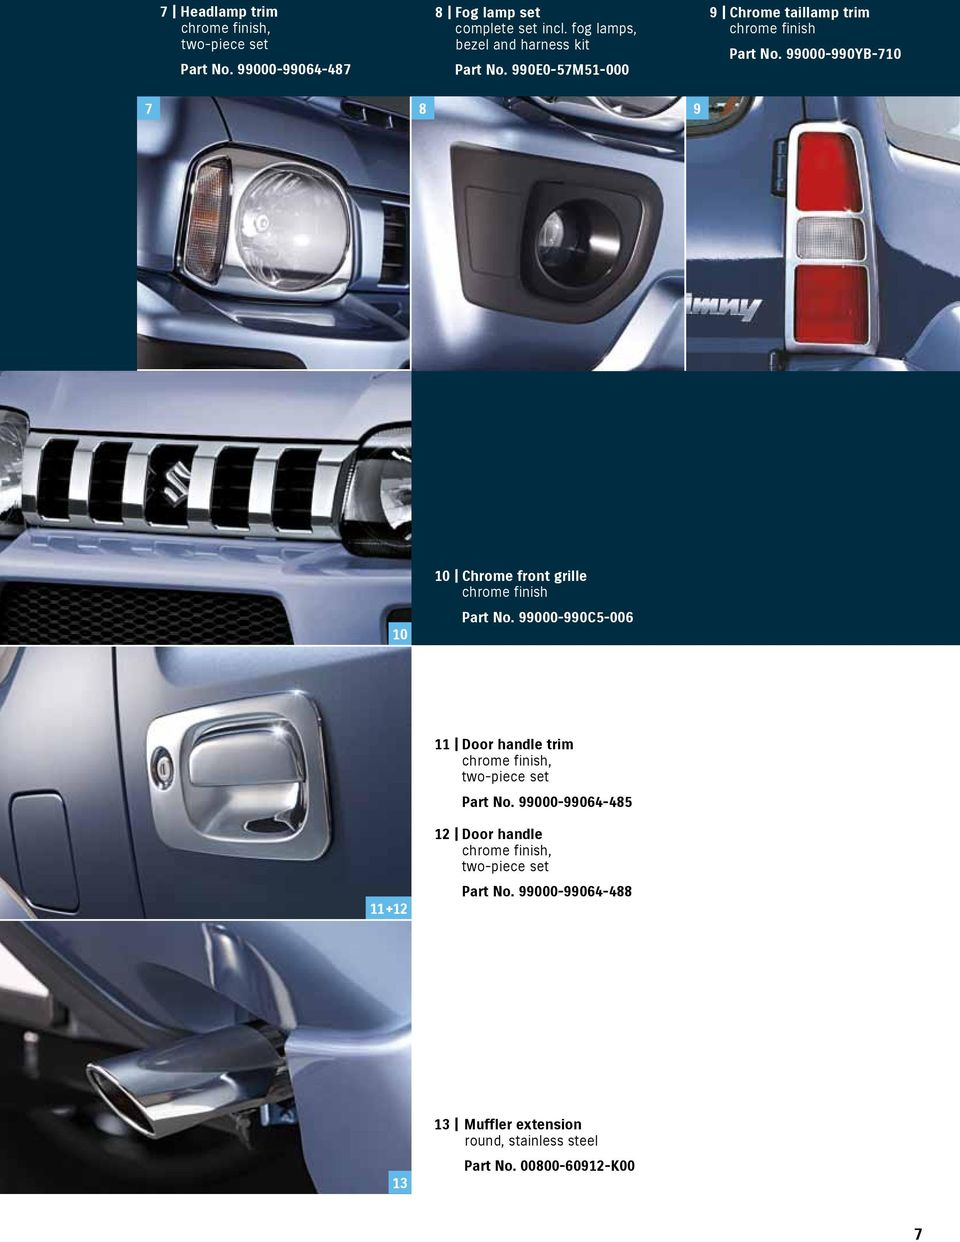 Accessories Catalogue Pdf 2000 Excursion 4x4 68l Engignition Switchwiring Harnesstrans 99000 990yb 710 7 8 9 10 Chrome Front Grille Finish Part